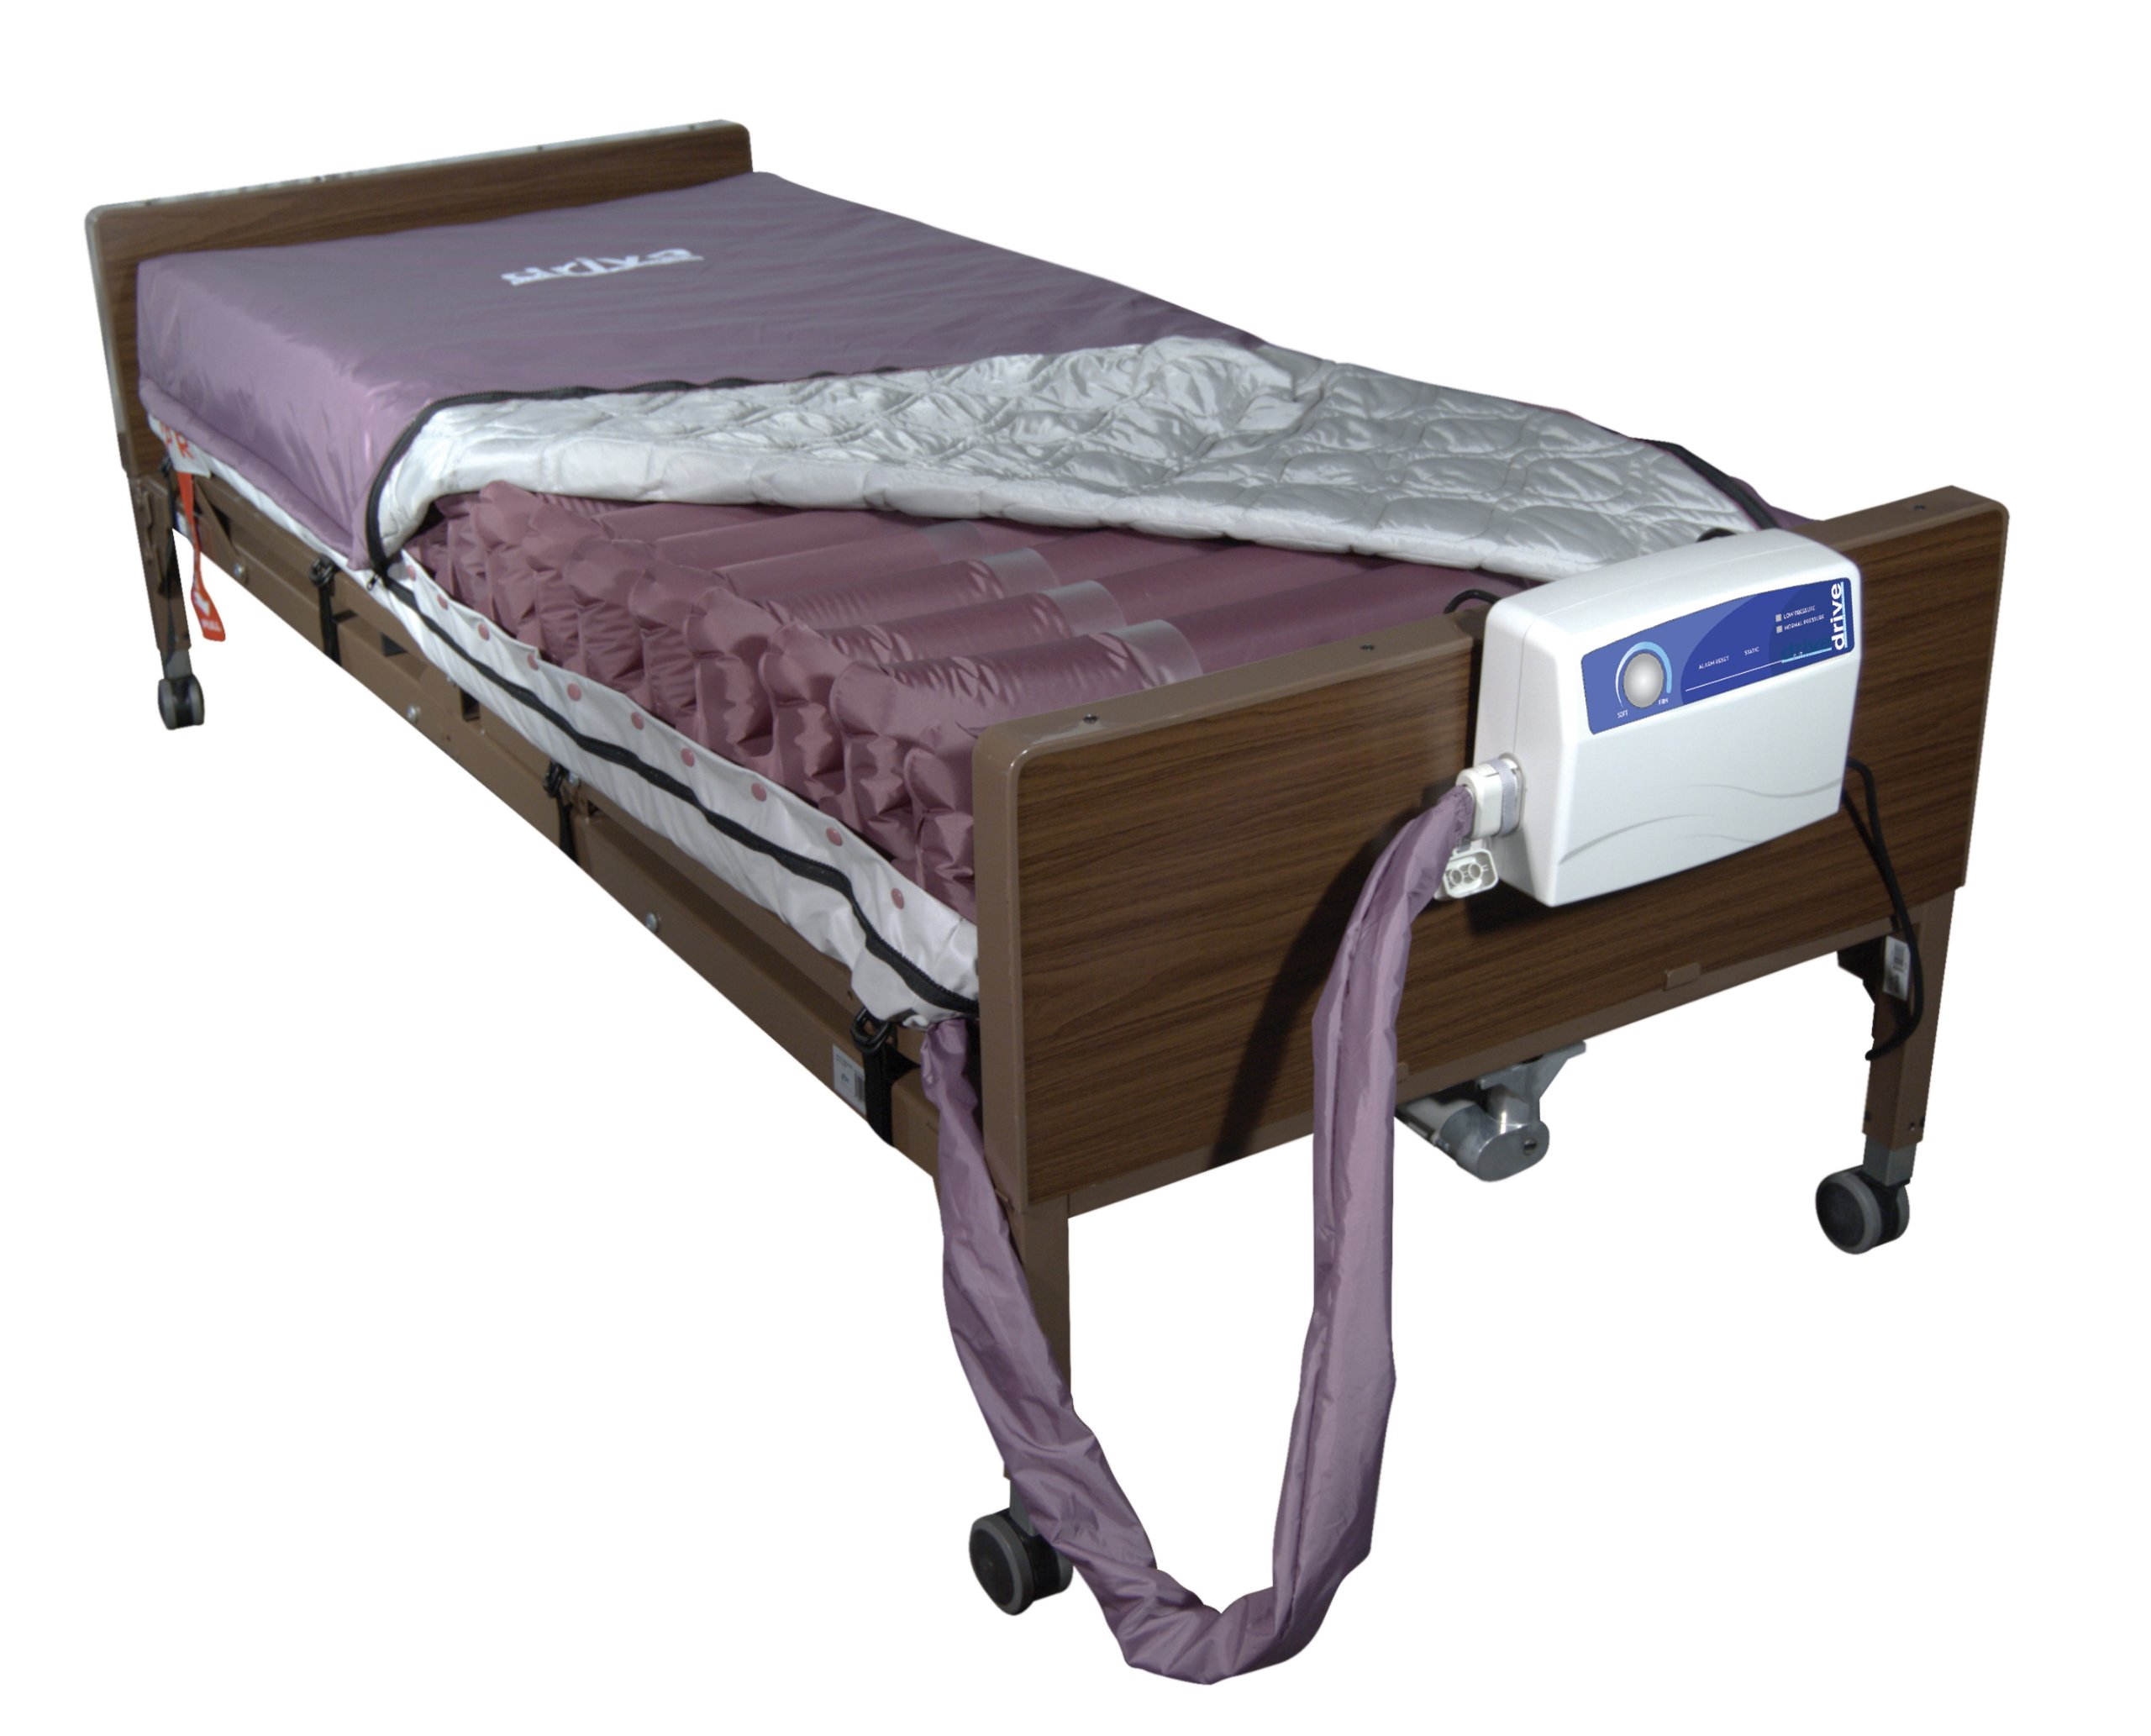 Drive Medical Med Aire Low Air Loss Mattress Replacement System with Alternating Pressure, Dark Purple